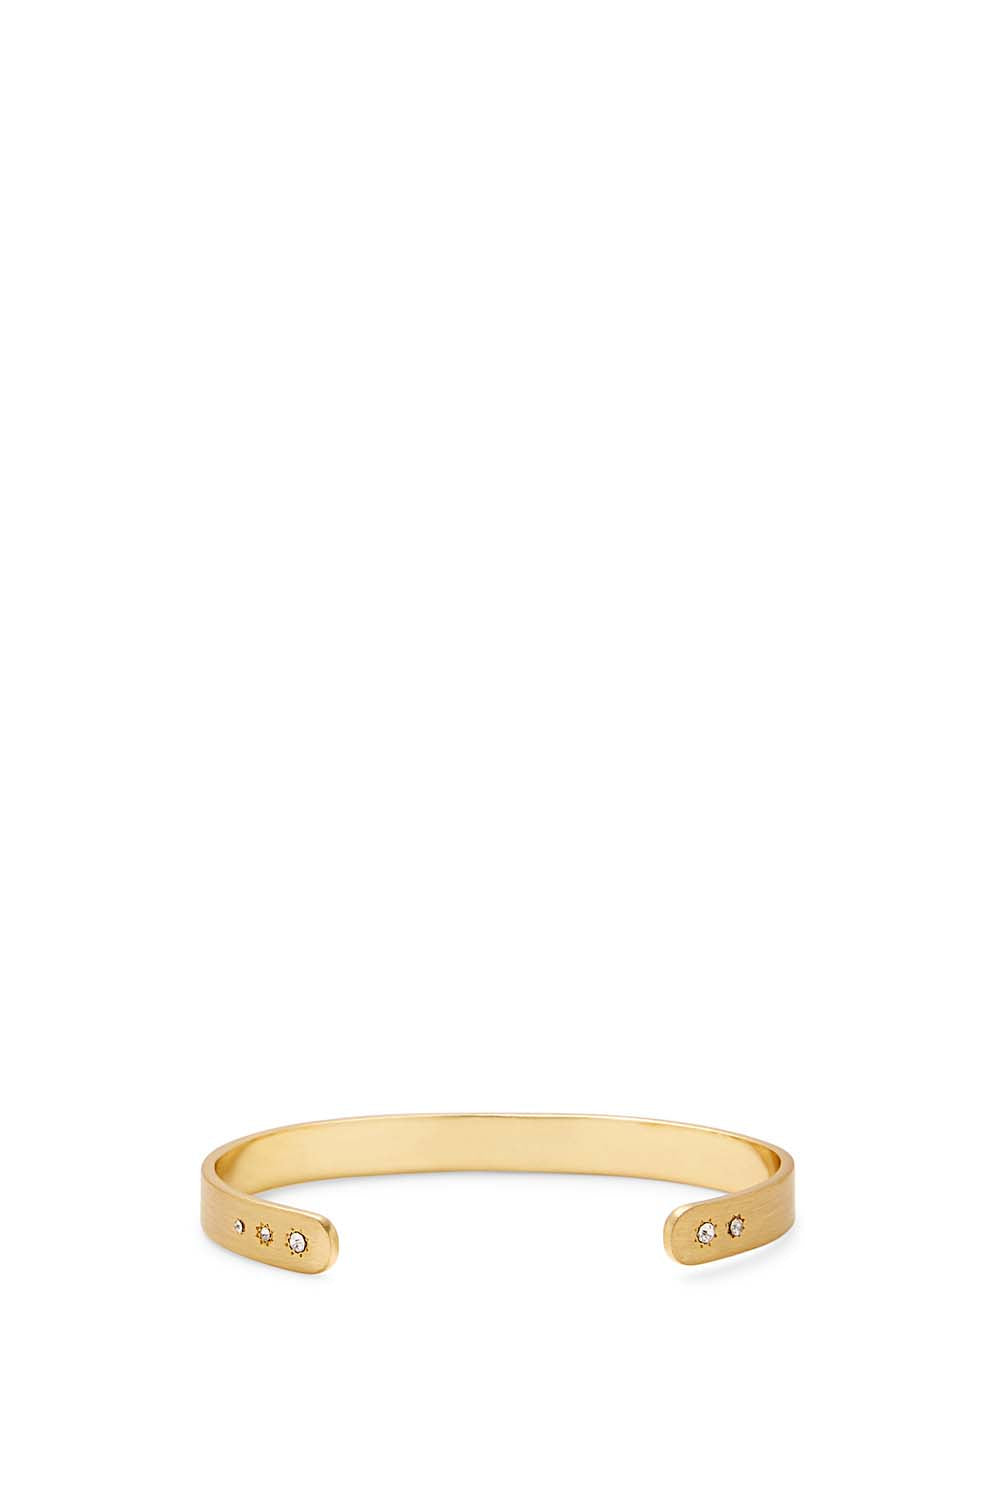 Rebecca Minkoff Metal Cuff With Stone Details